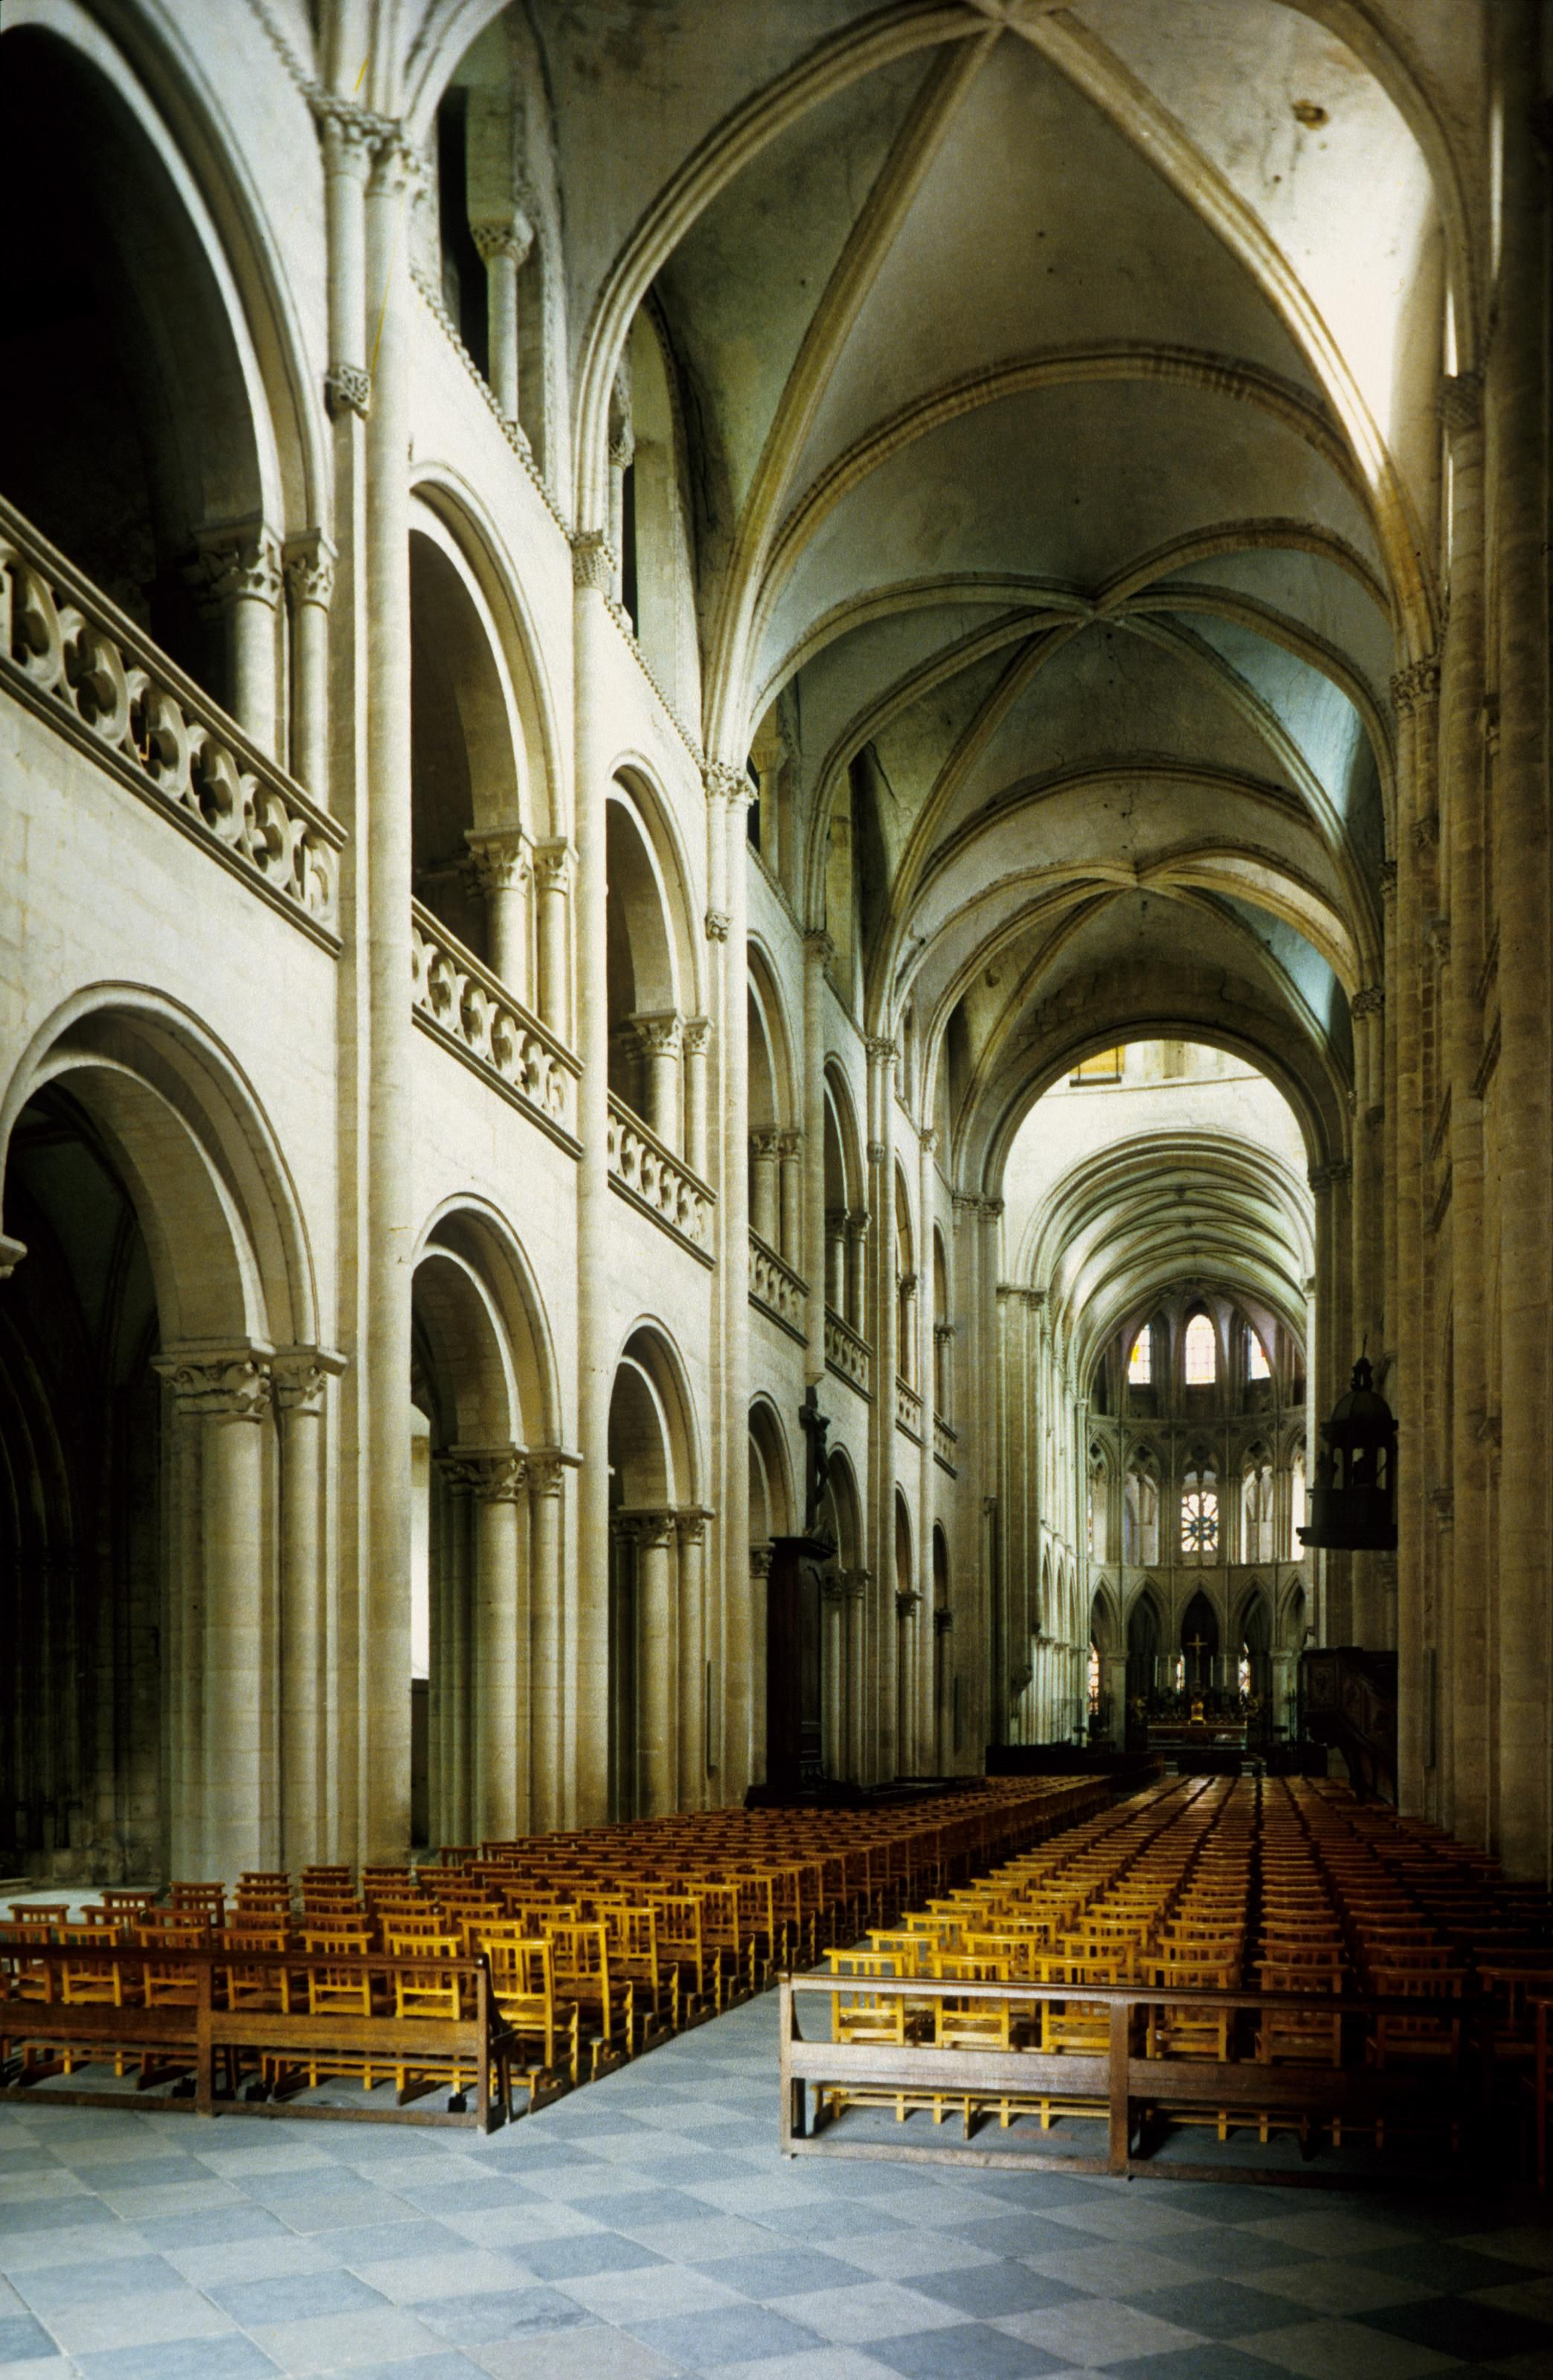 romanesque architecture france nave st etienne the abbaye aux hommes caen 1067 1120 at. Black Bedroom Furniture Sets. Home Design Ideas